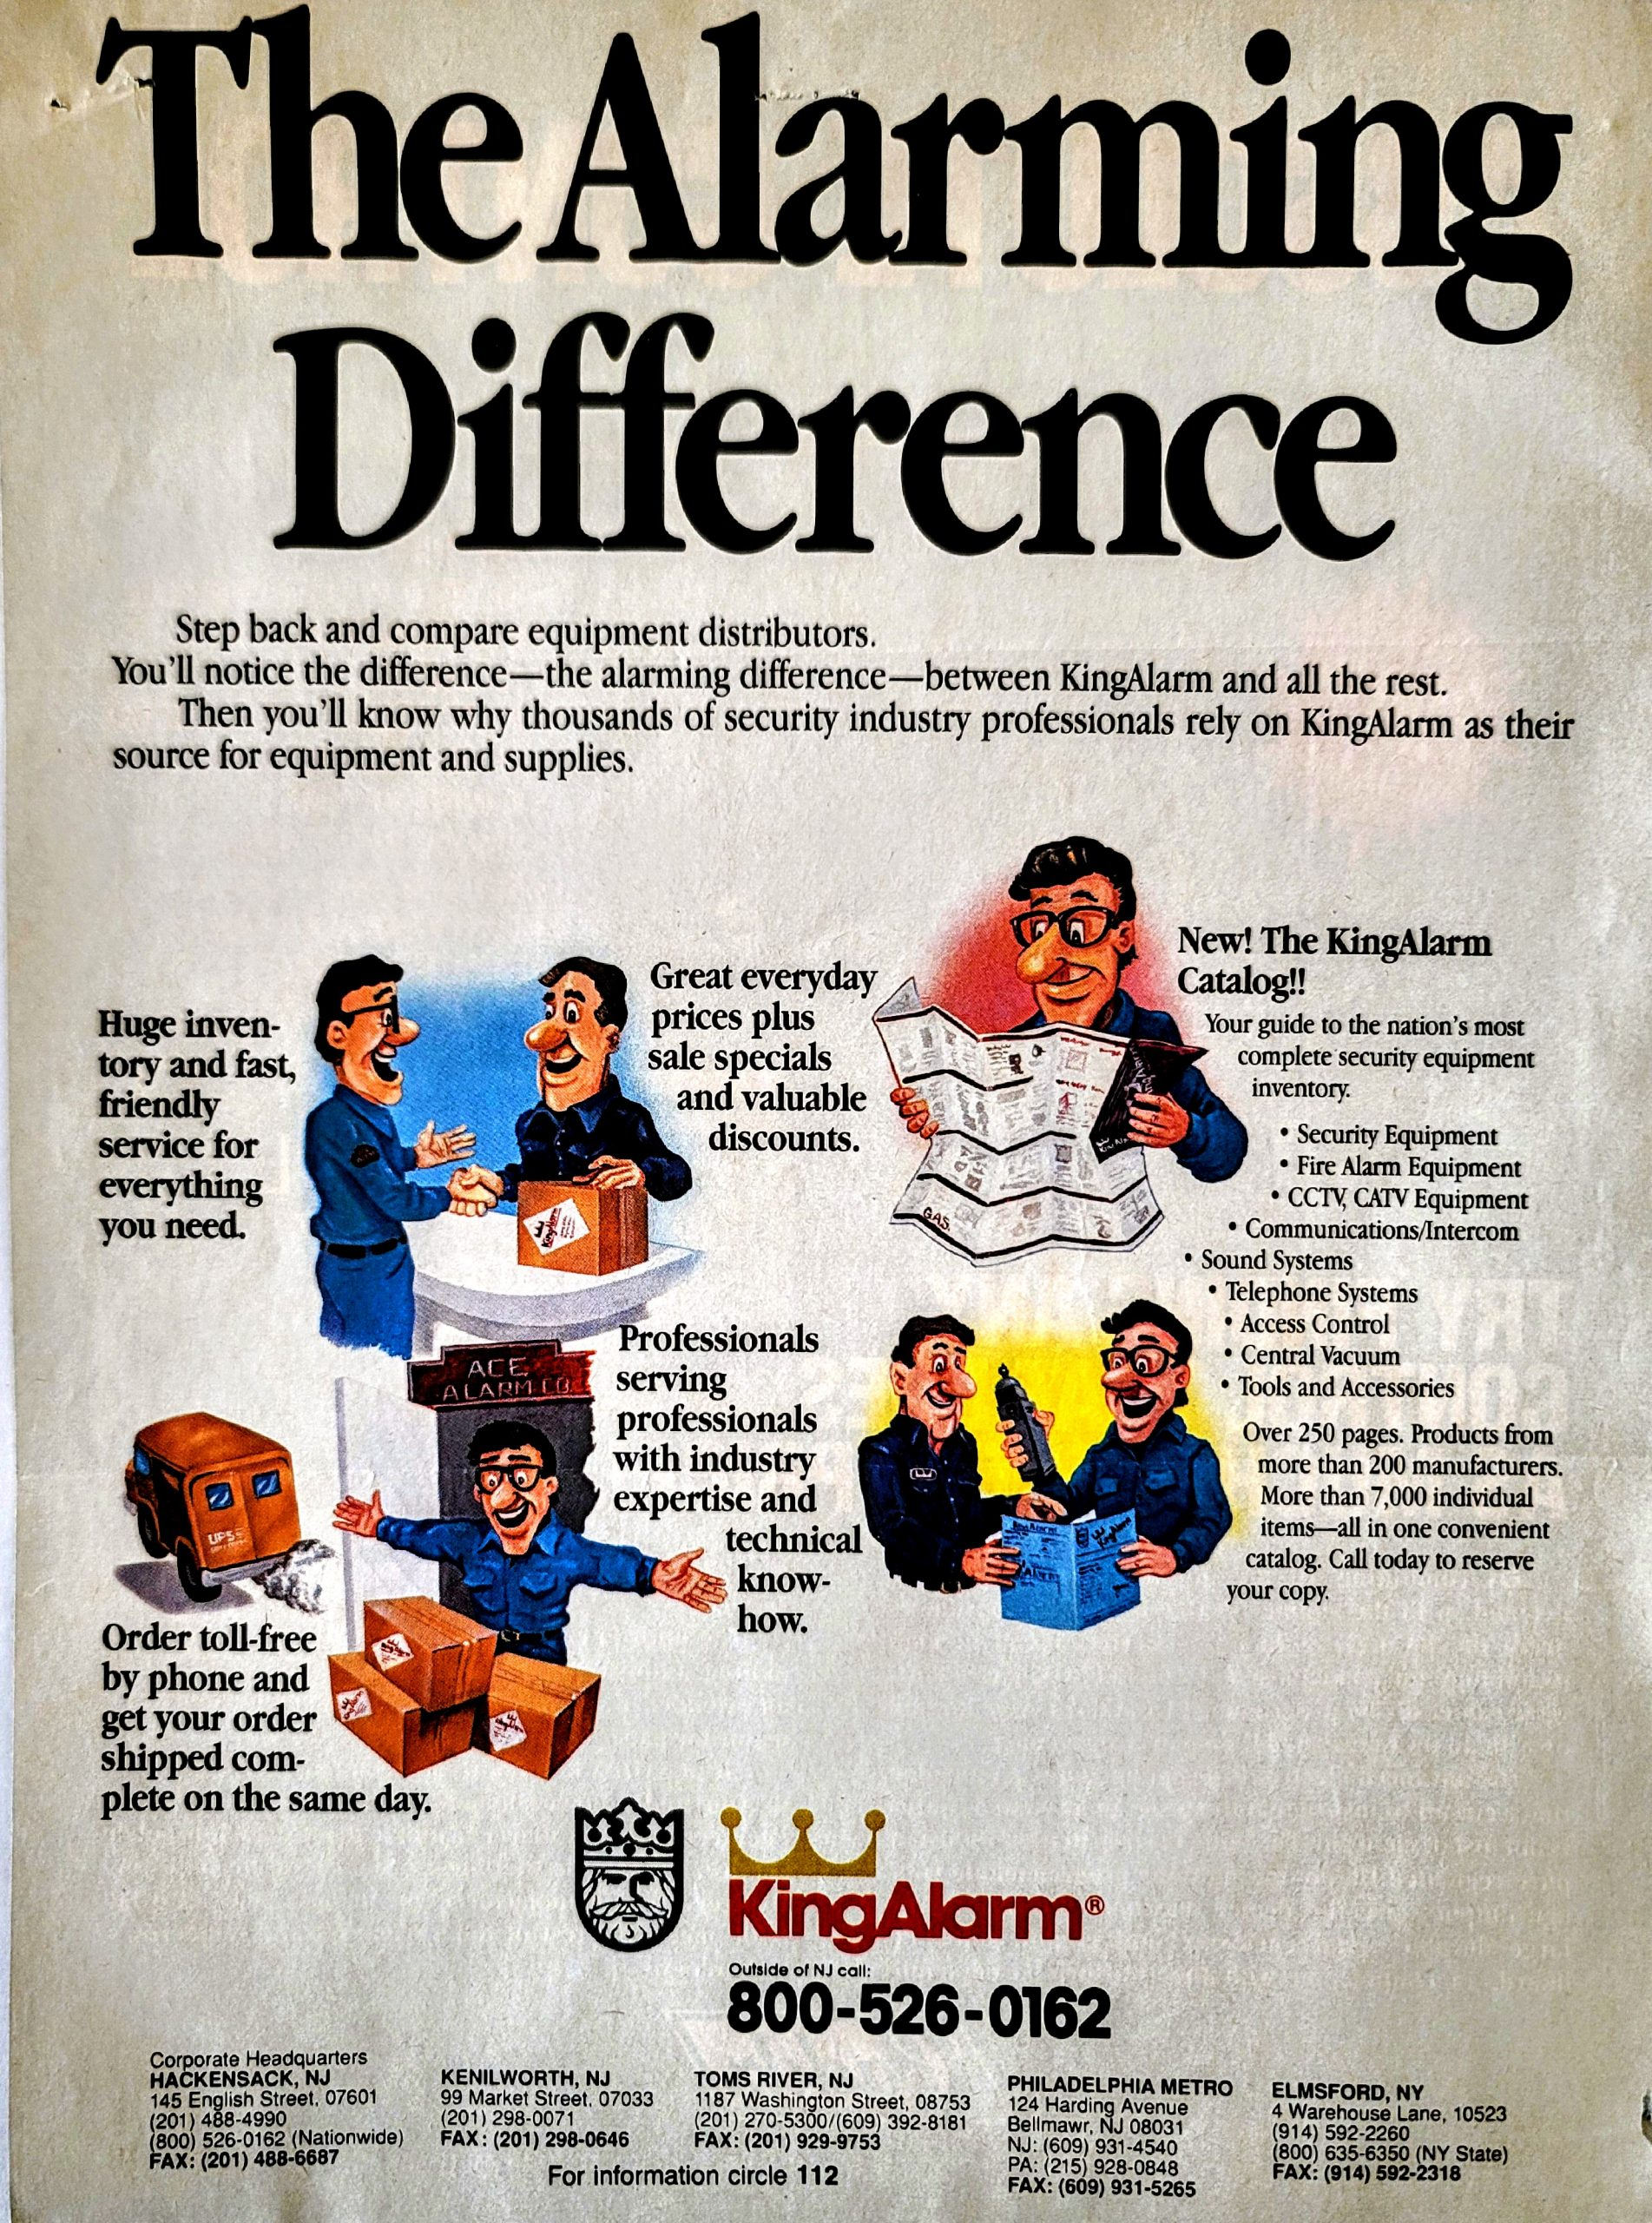 kingalarm_ad_difference_20